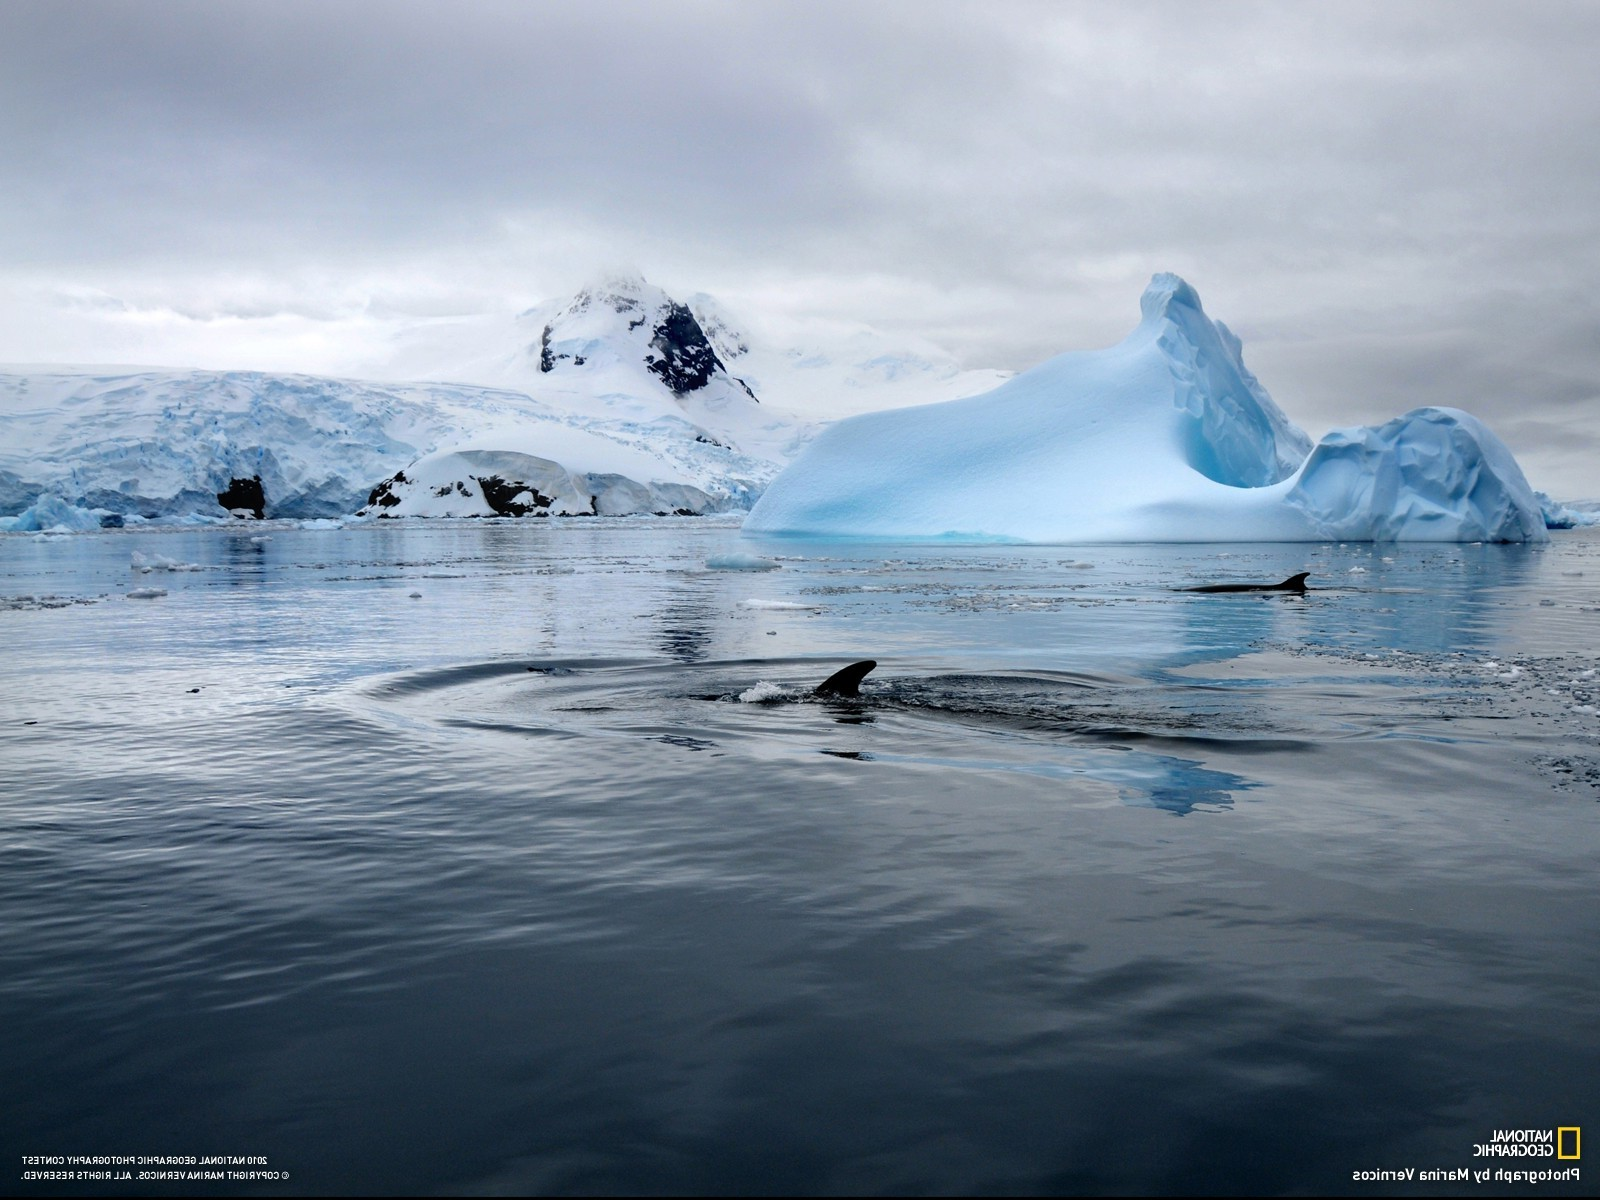 Black And Blue Cars 4k Wallpaper National Geographic Whale Iceberg Sea Antarctica Snow